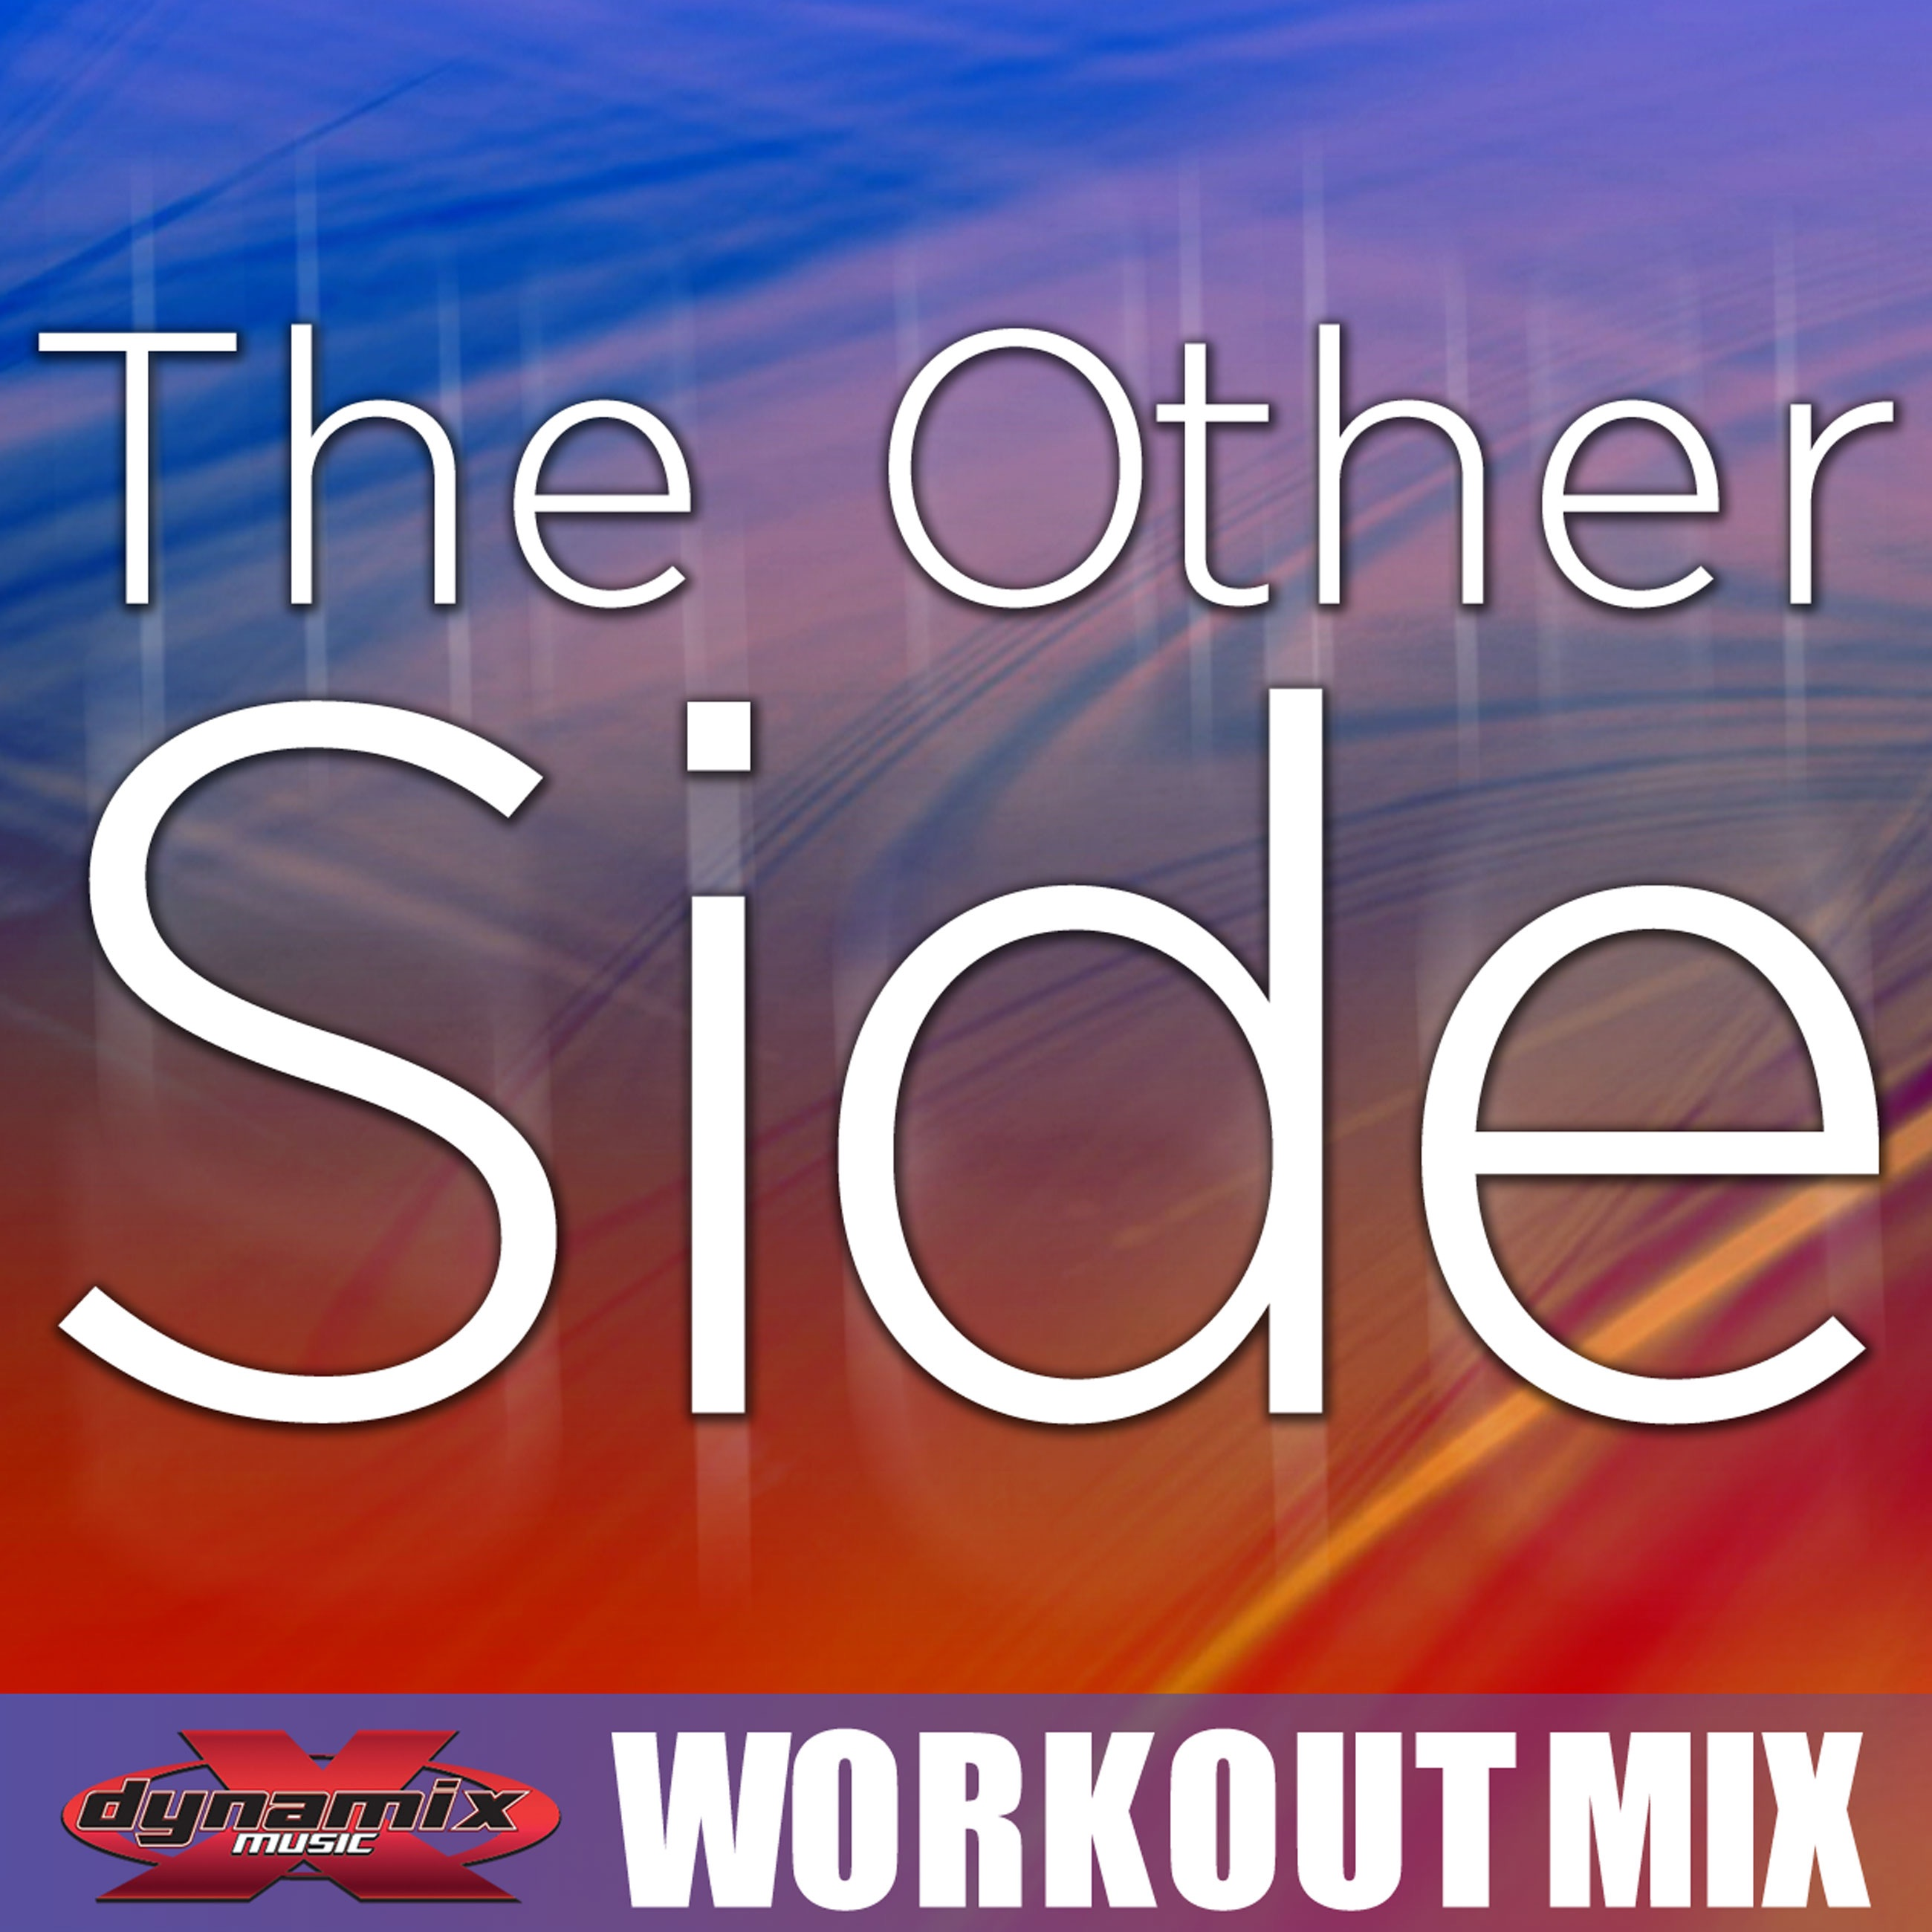 The Other Side (Workout Mix) - Single